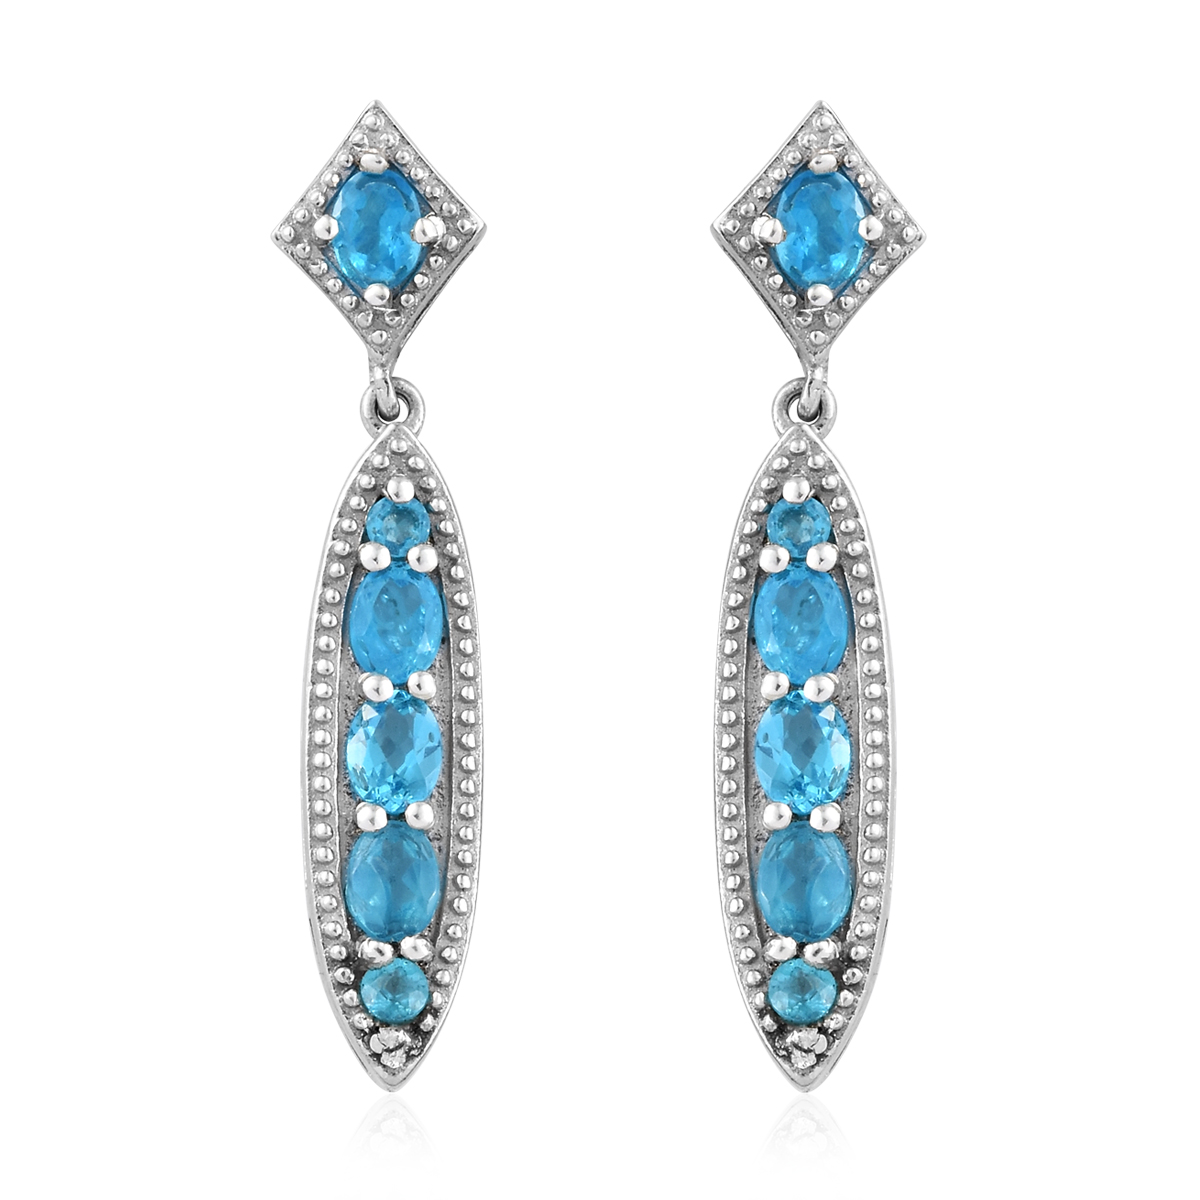 5d9f77d9be15f4 Malgache Neon Apatite Dangle Earrings in Platinum Over Sterling Silver 1.50  ctw